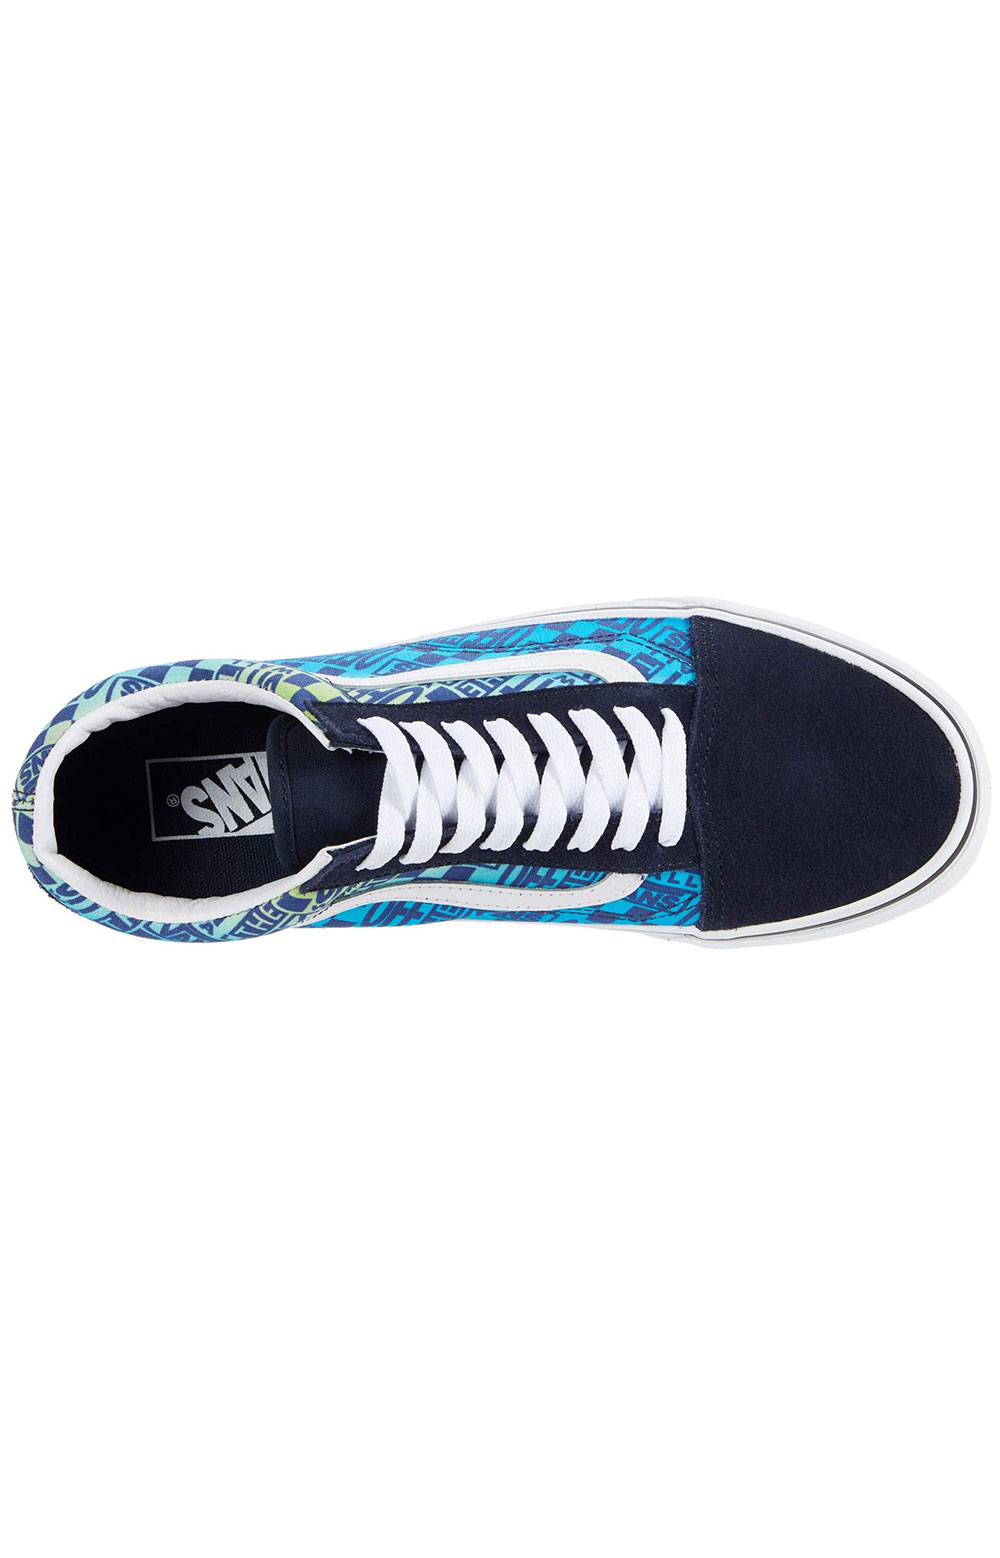 (U3B2PA) Logo Flame Old Skool Shoes - Parisian Night 4